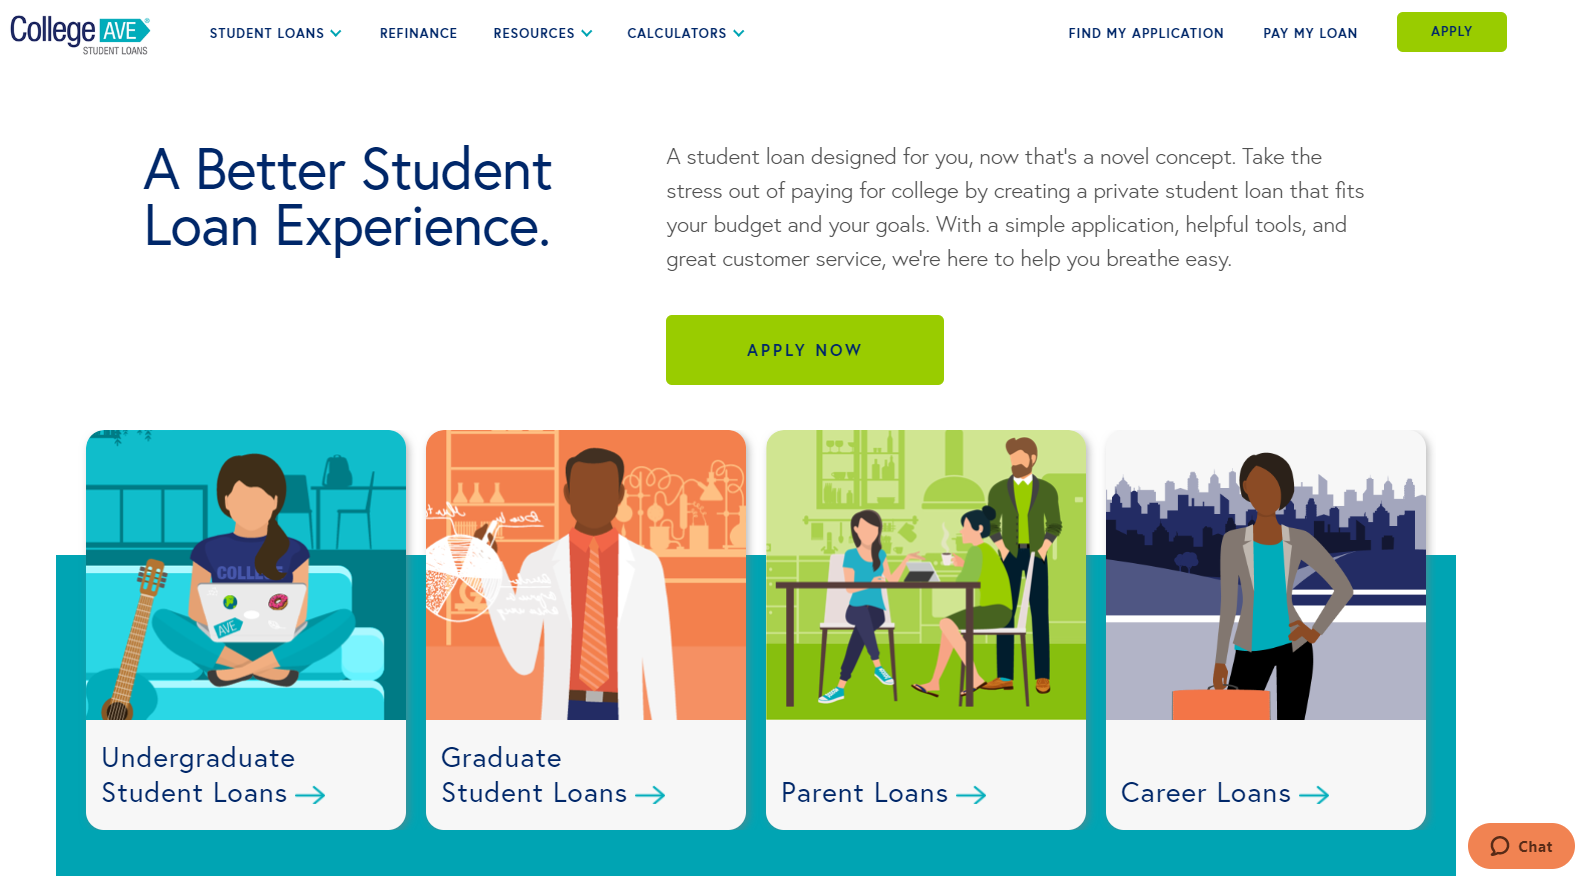 college-ave-review-private-student-loans